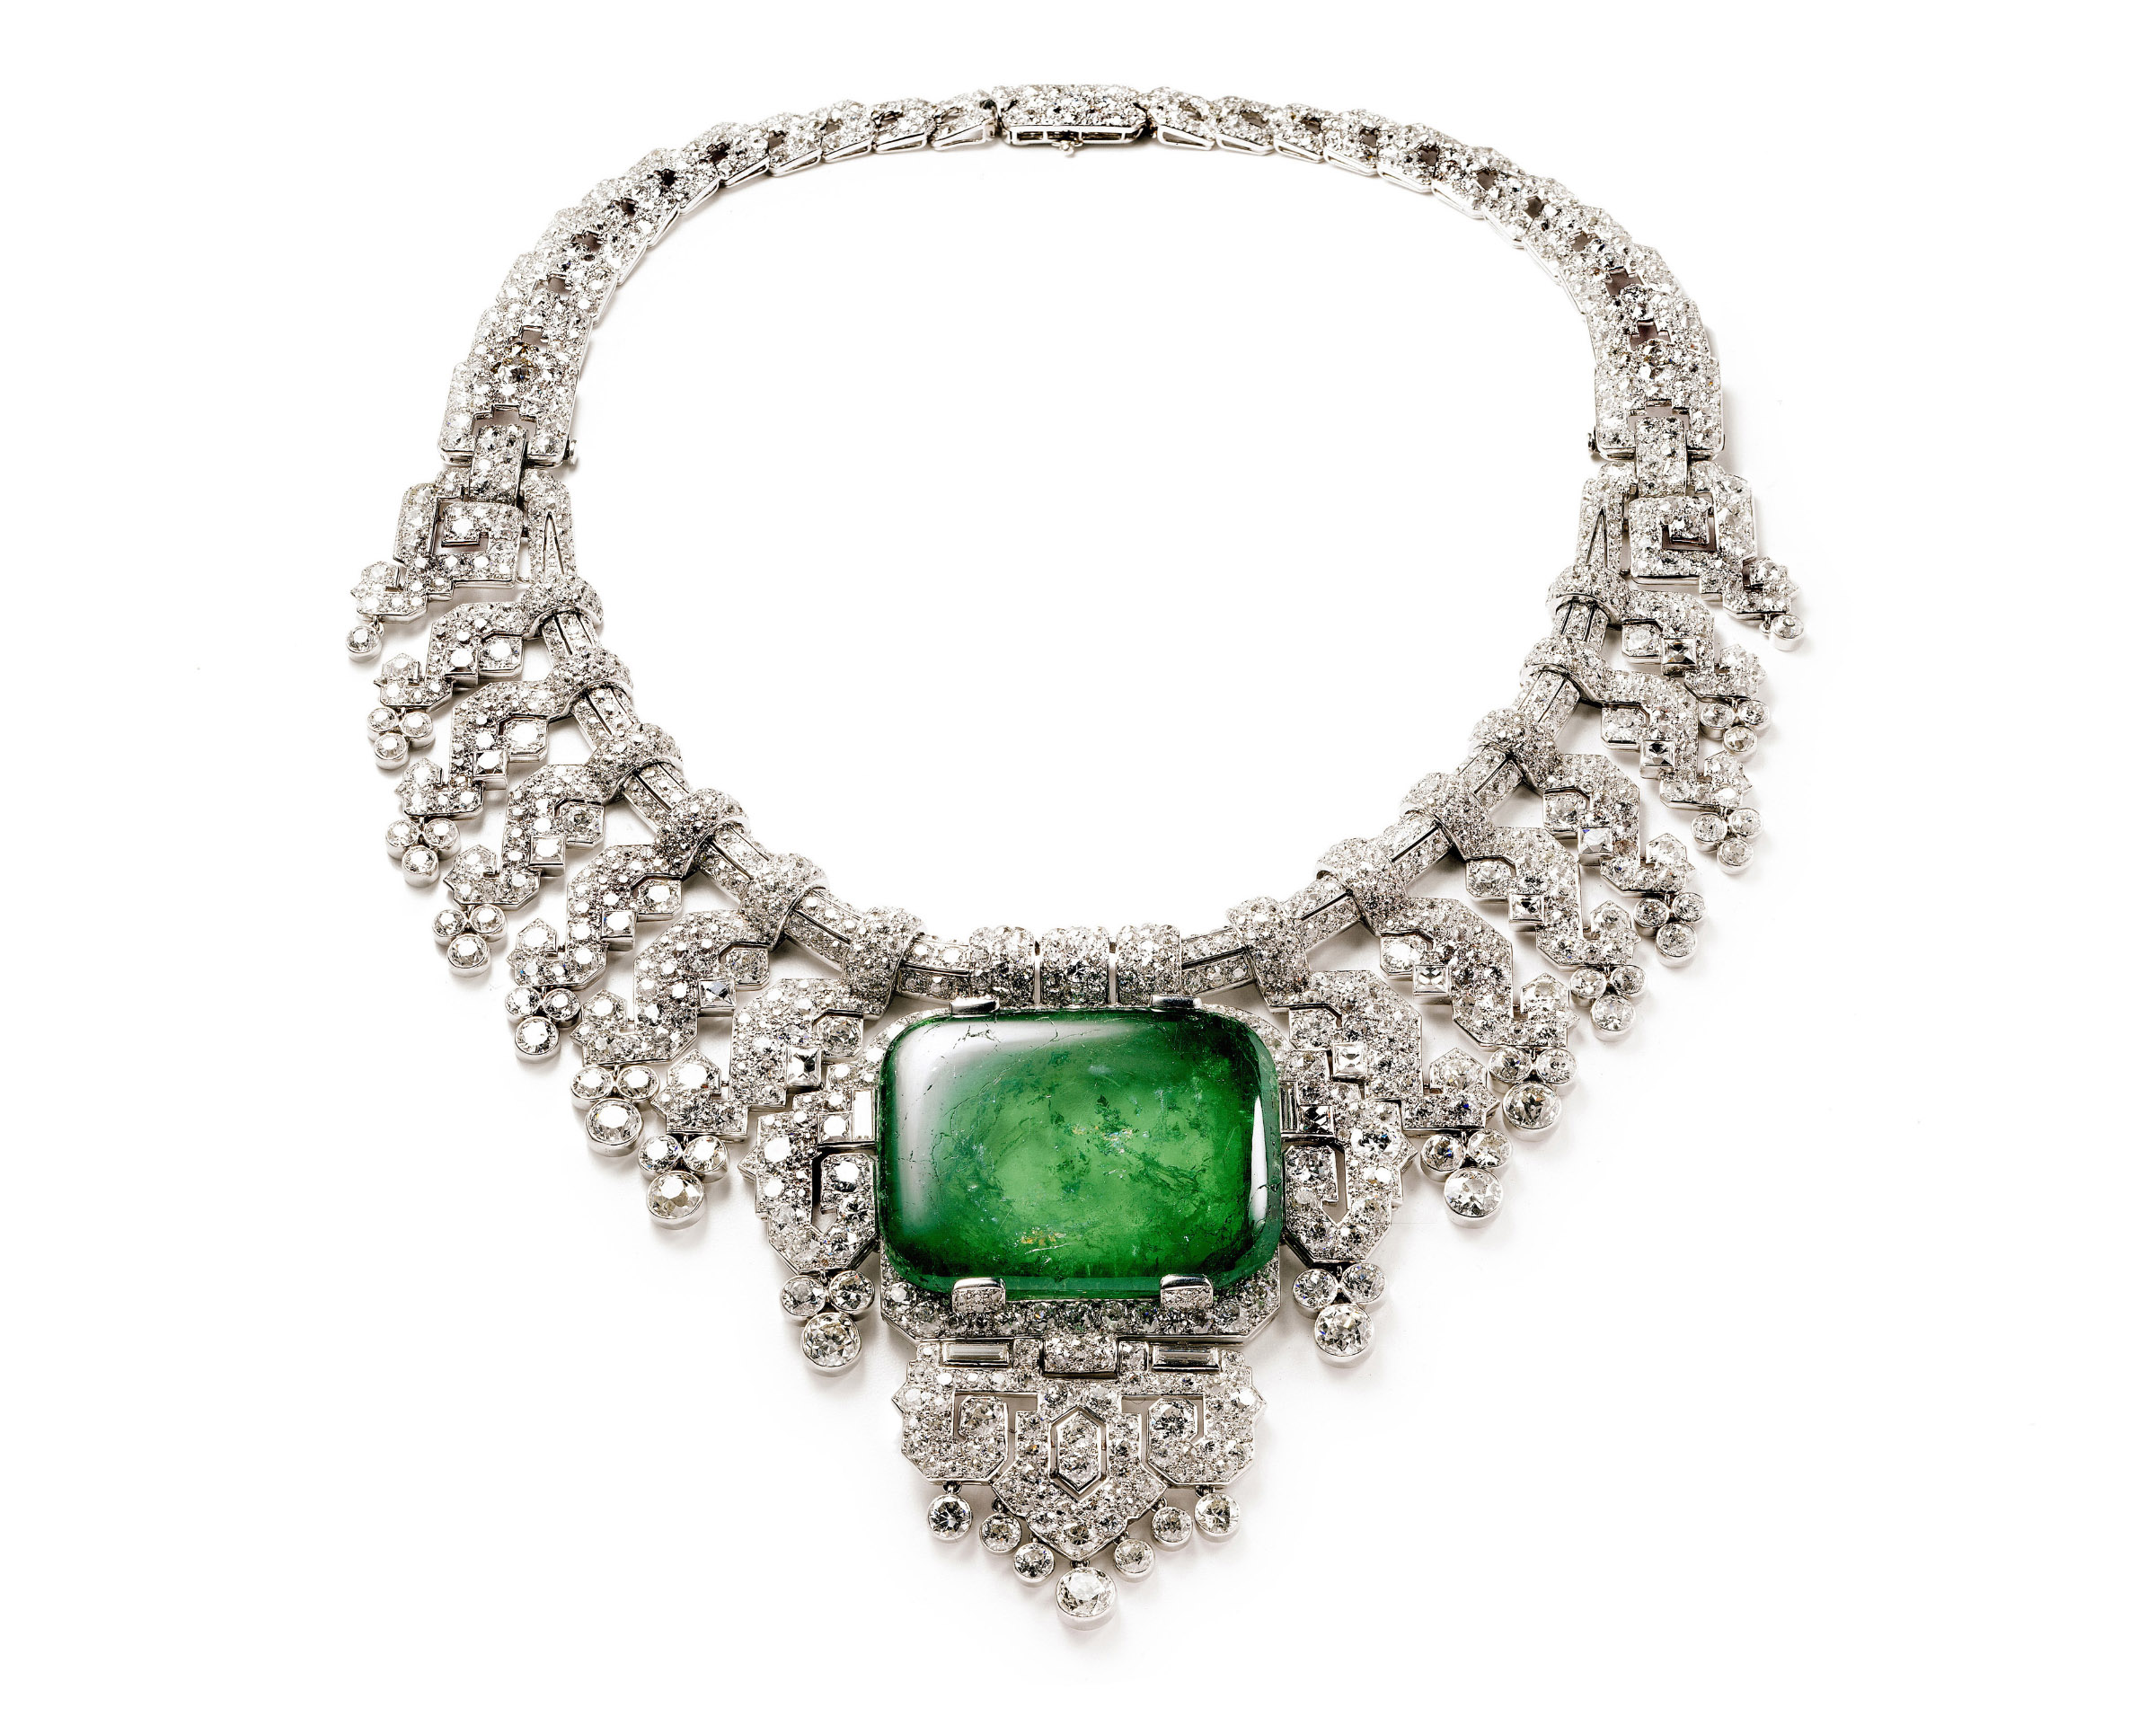 Necklace worn by Countess of Granard _c_ Cartier